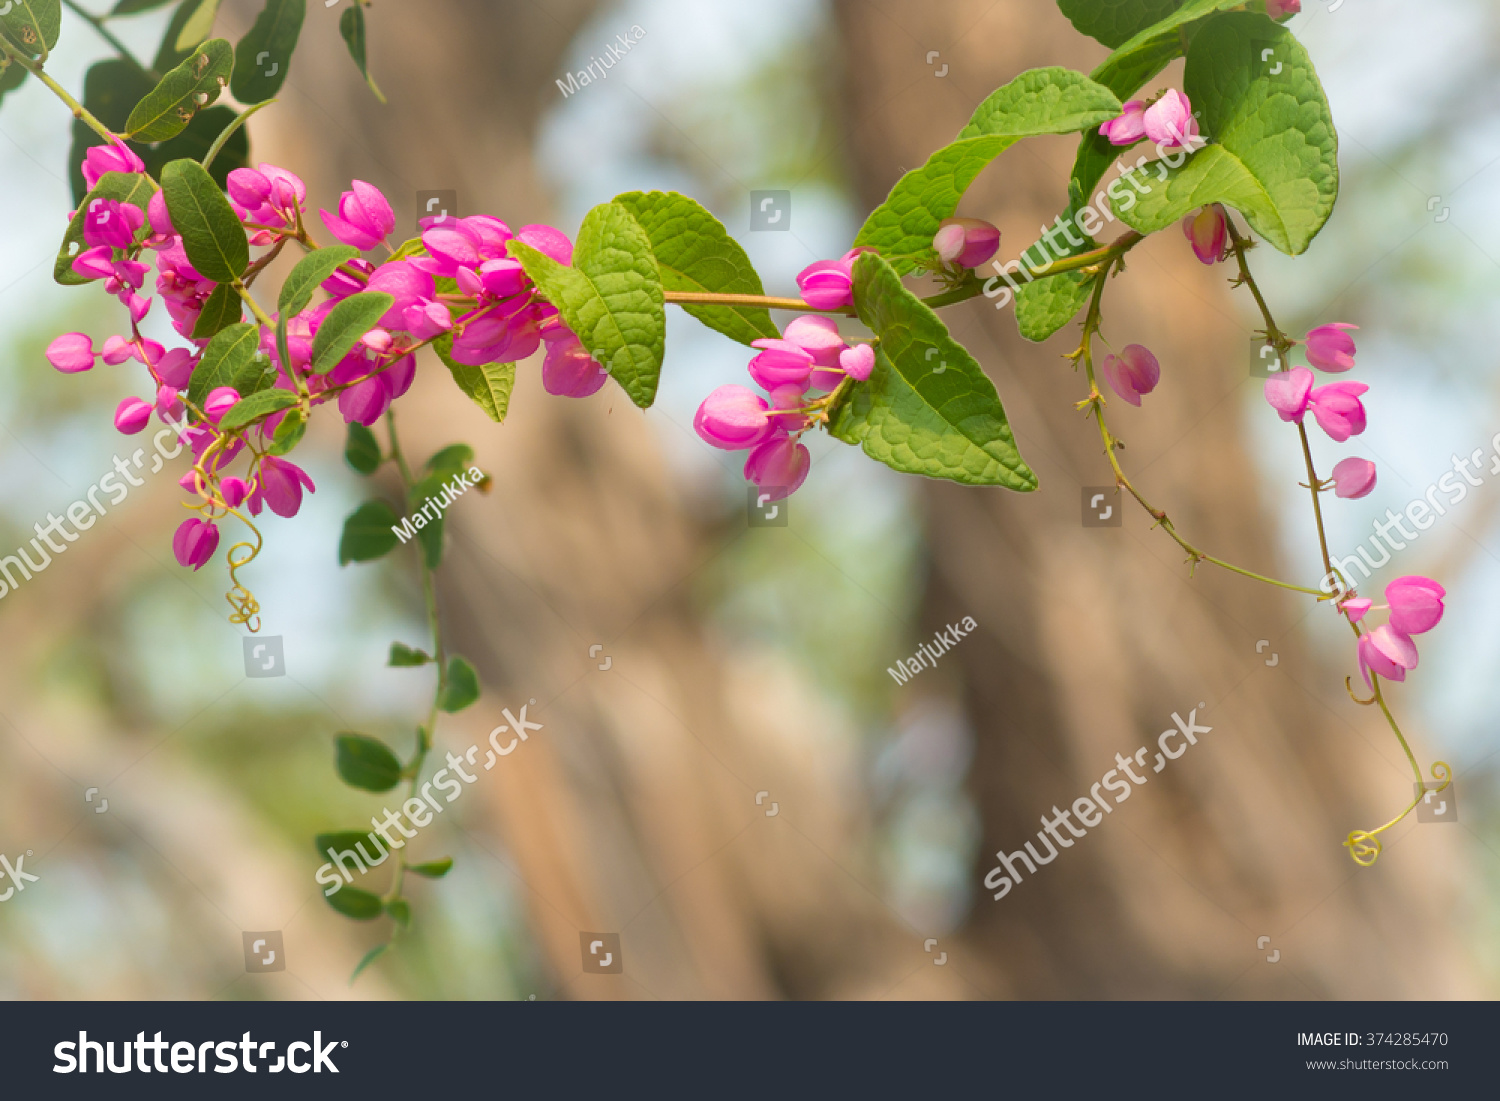 Ivy Pink Heart Shaped Flowers Leaves Stock Photo Royalty Free